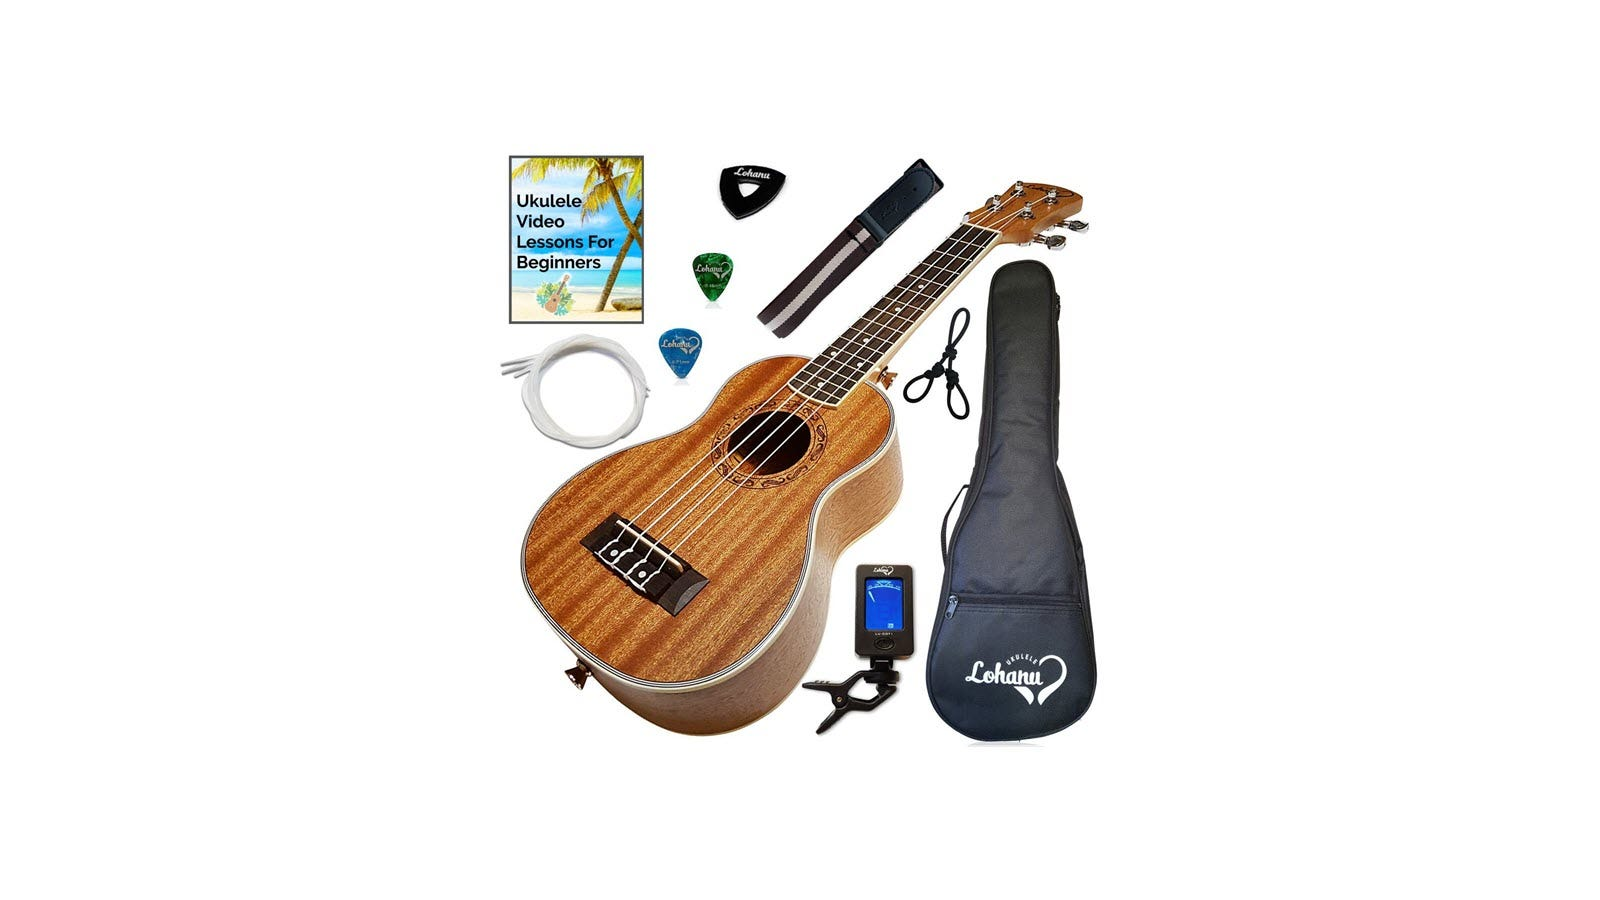 A Lohanu Ukulele, with case, straps, picks, tuner, strings, and video lessons.